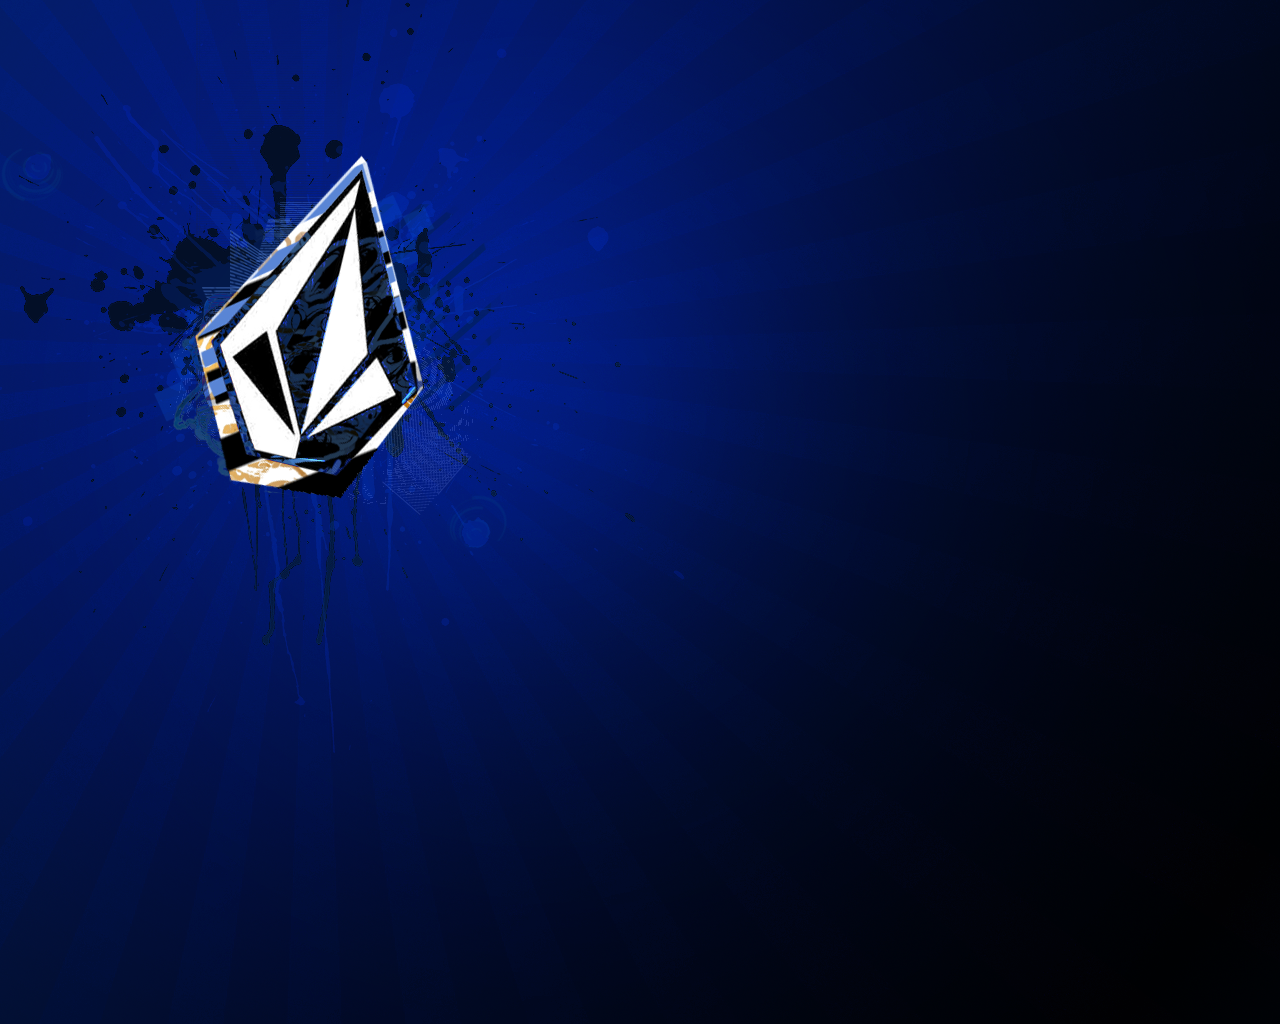 Volcom Wallpaper by hugorr